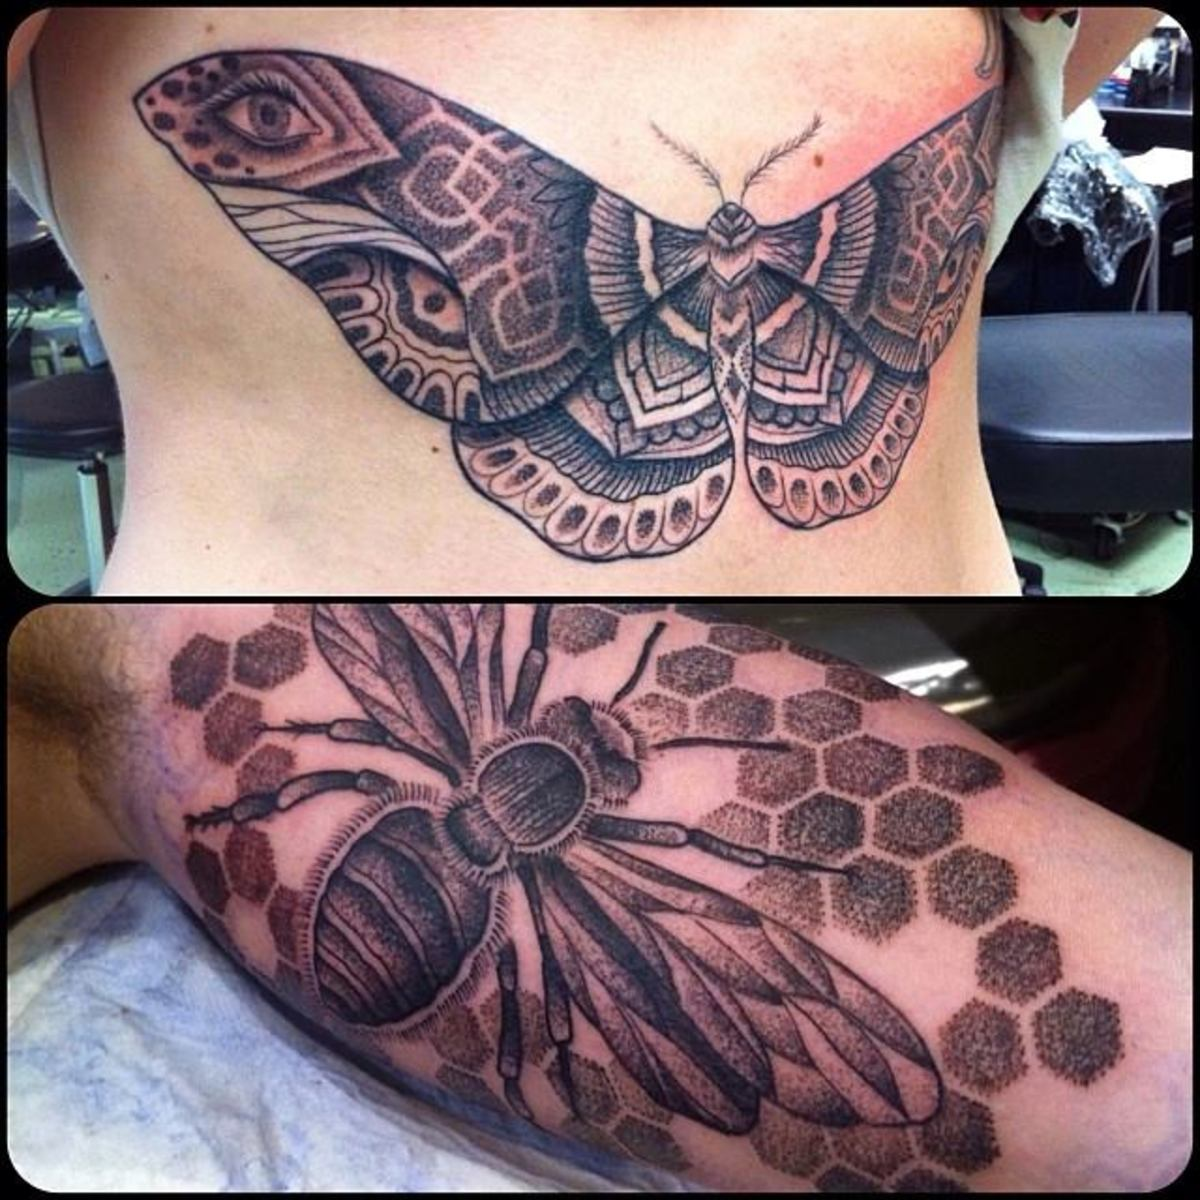 Dot tattoo. Fly and moth tattoo